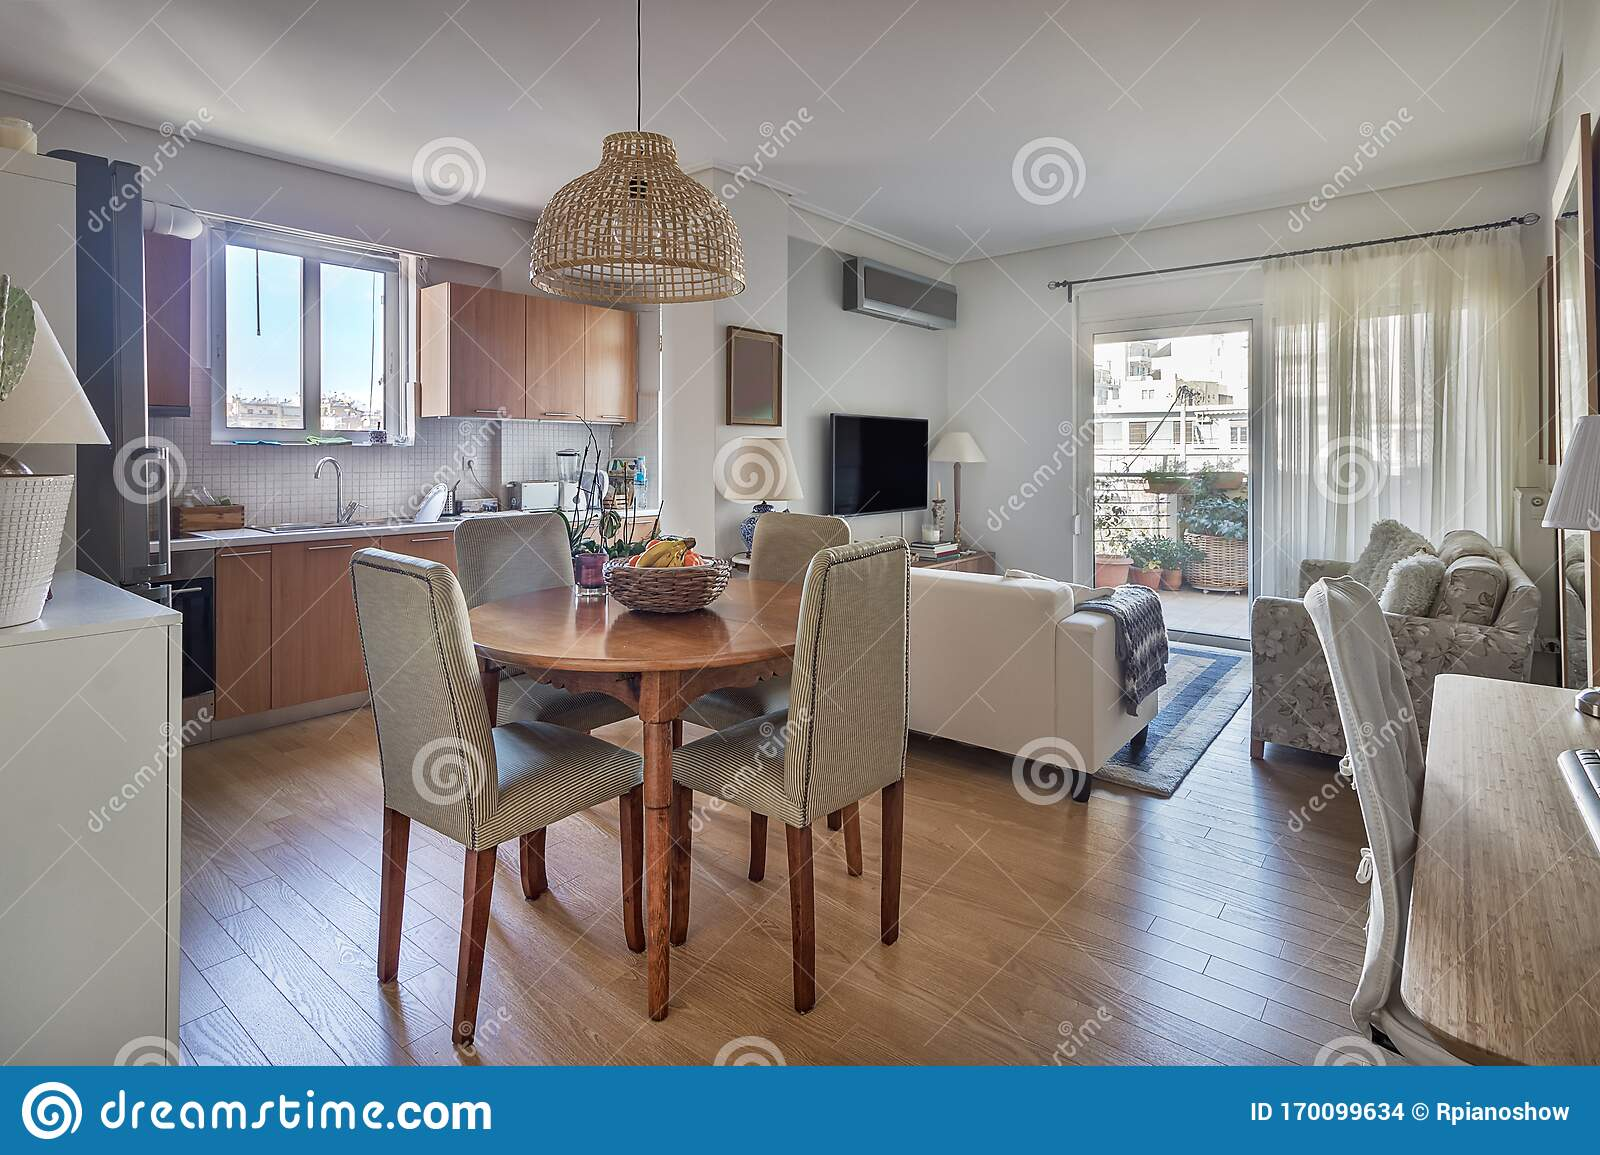 Open Concept Of A Kitchen Dining Wooden Table And Living Room Stock Photo Image Of Interior Open 170099634